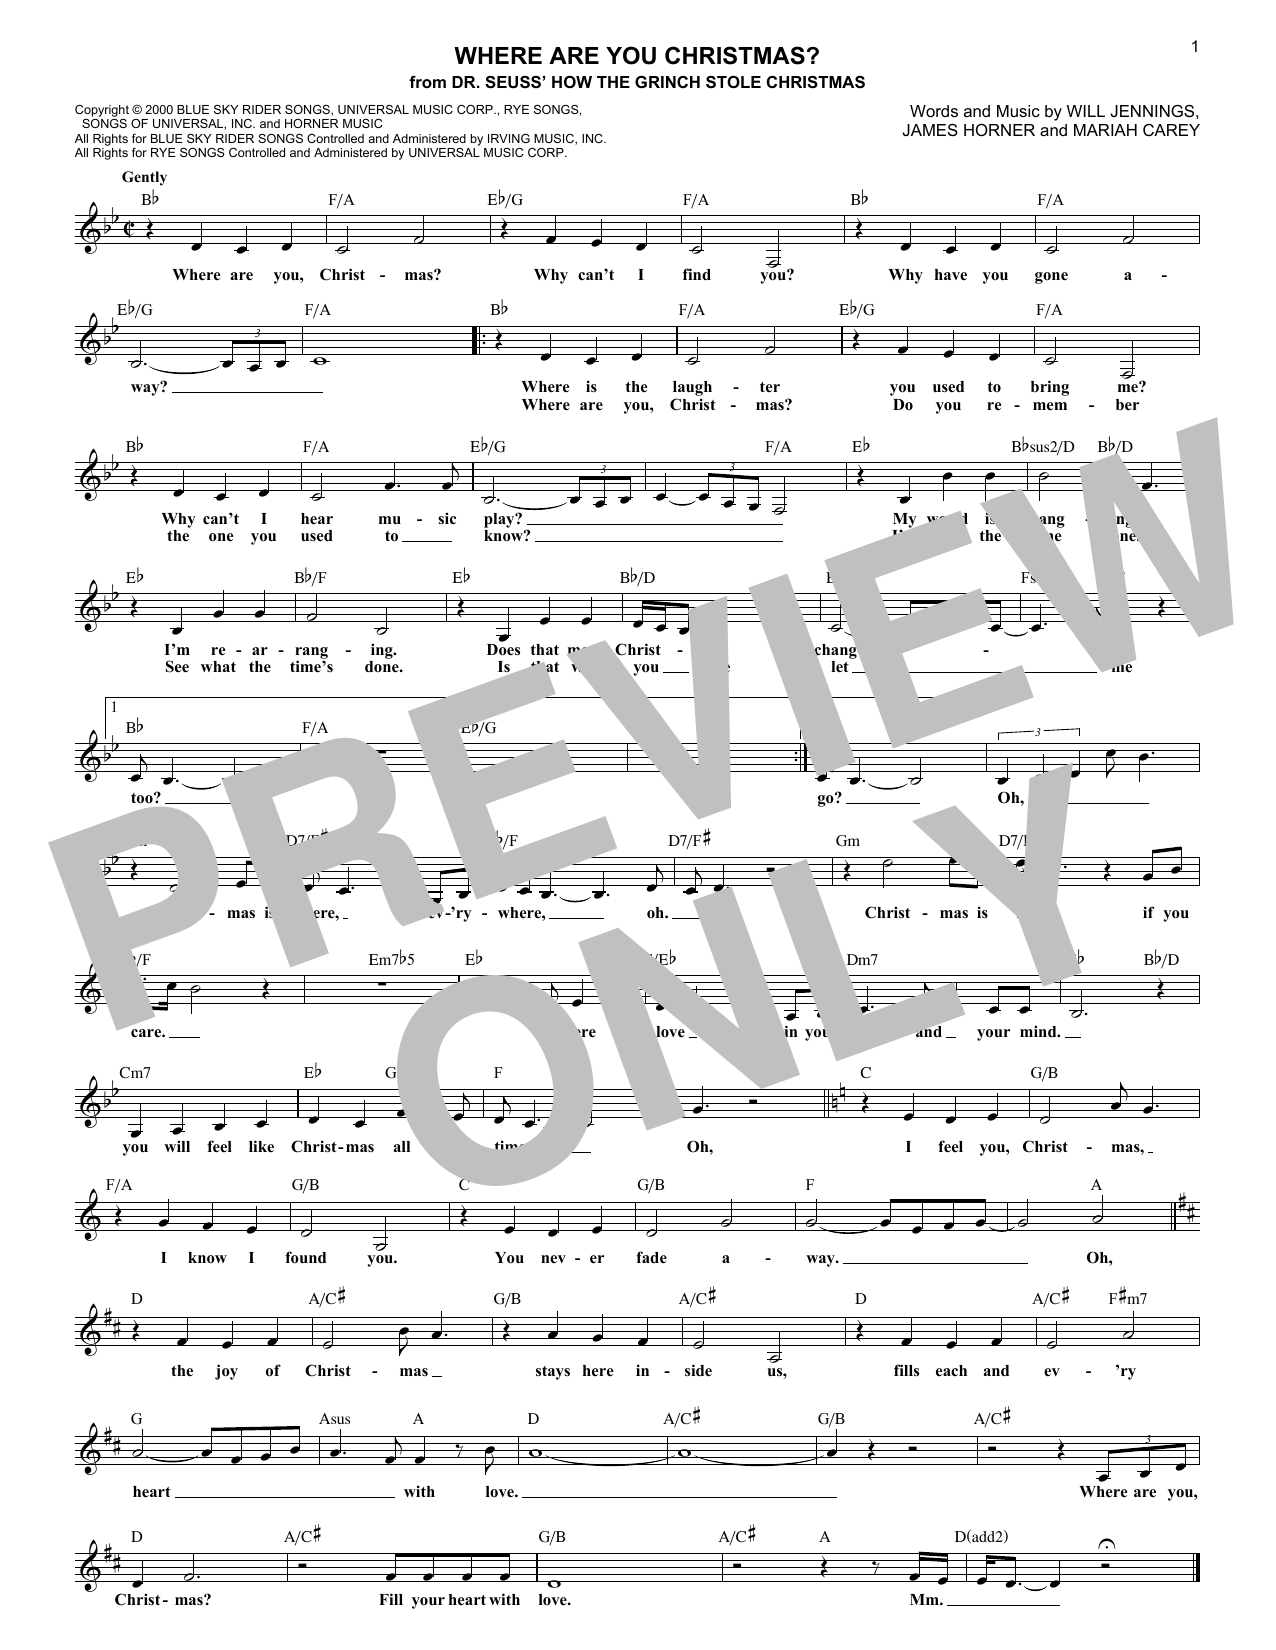 Where Are You Christmas Lyrics.Sheet Music Digital Files To Print Licensed Will Jennings